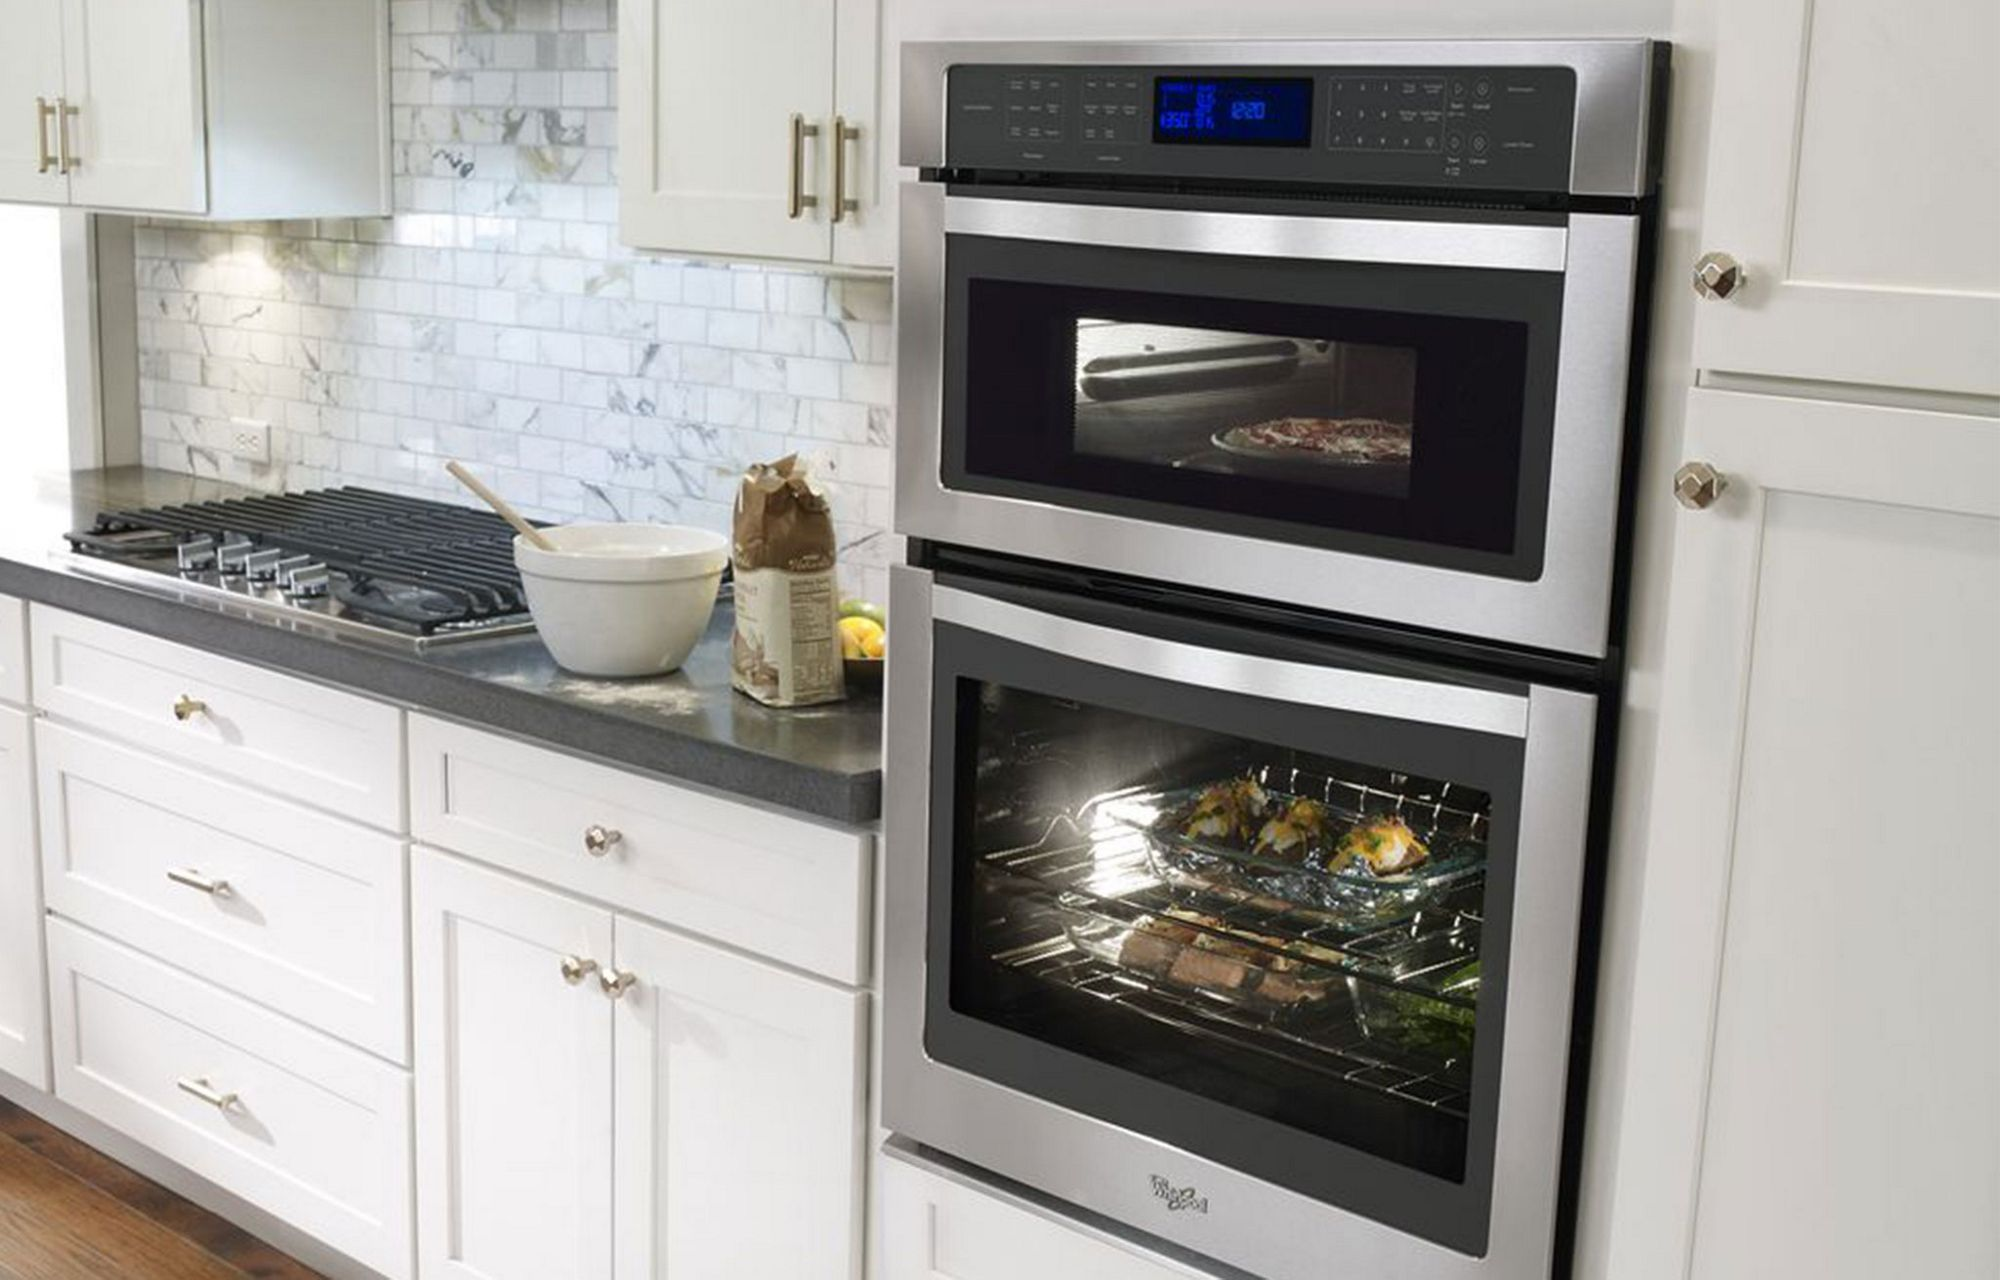 Wall oven under cooktop - Use The Fit System To Seamlessly Integrate Our Wall Ovens With Your Space